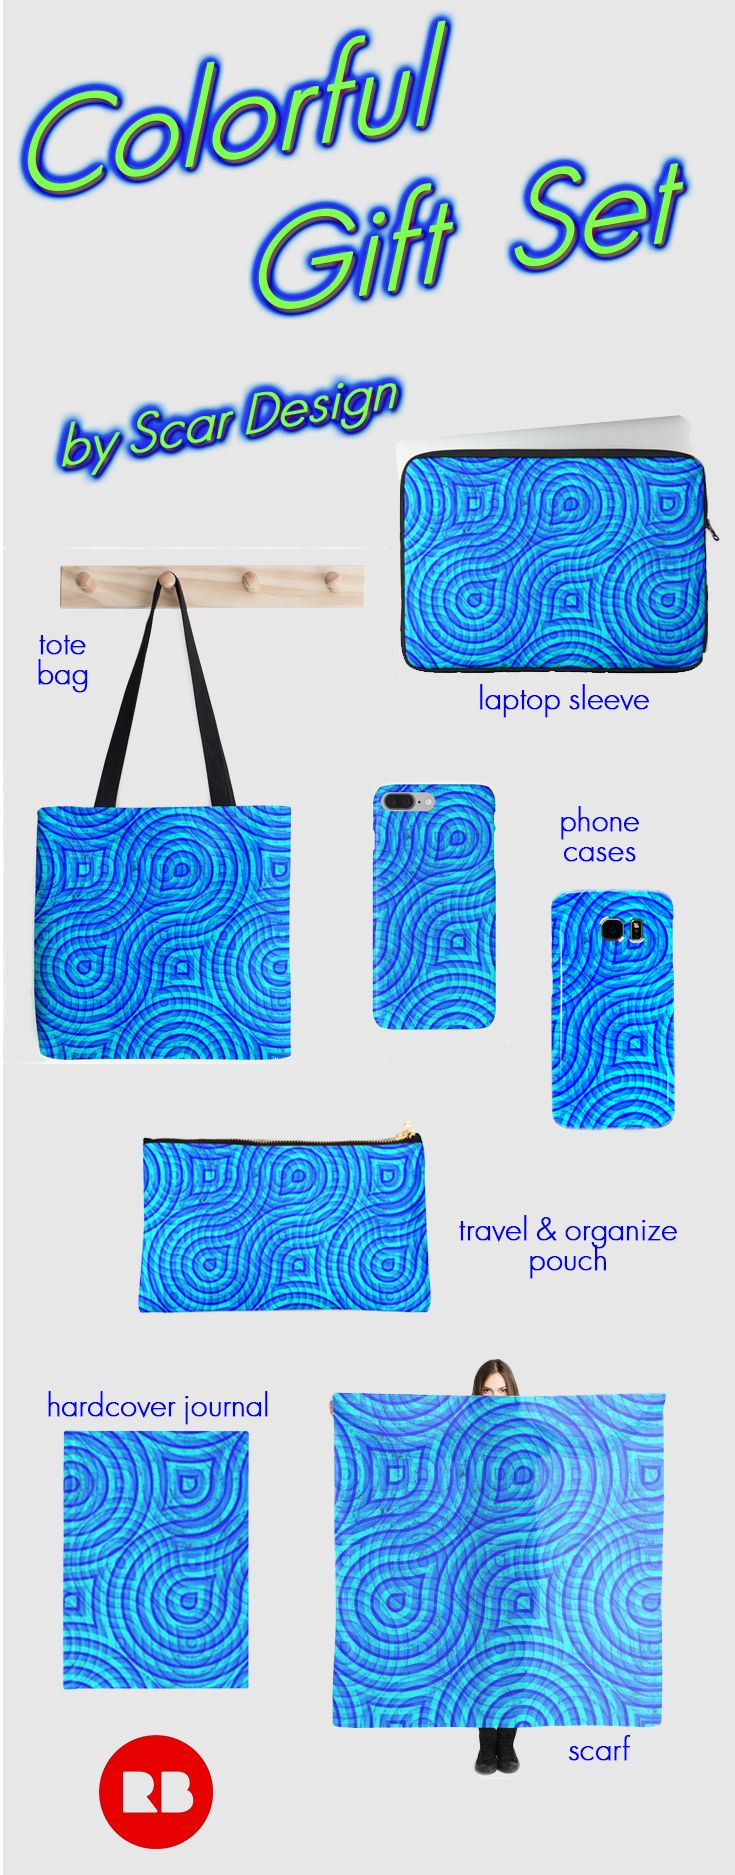 Save 20% sitewide. All original. All the time. Use: EVERYTHING20.  Colorful Gift Set by Scar Design.  #sales #redbubble #save #discount #colorful #pouch #summer #organizepouches #fashion #accessories  #travelset #travelpouch #scarf #journal #iphonecase #samsunggalaxycase #laptopsleeve #scardesign #giftsforher #designgifts #travelgifts #travel #totebag #blue #cyan #modern #giftset #gifts  #giftsforher